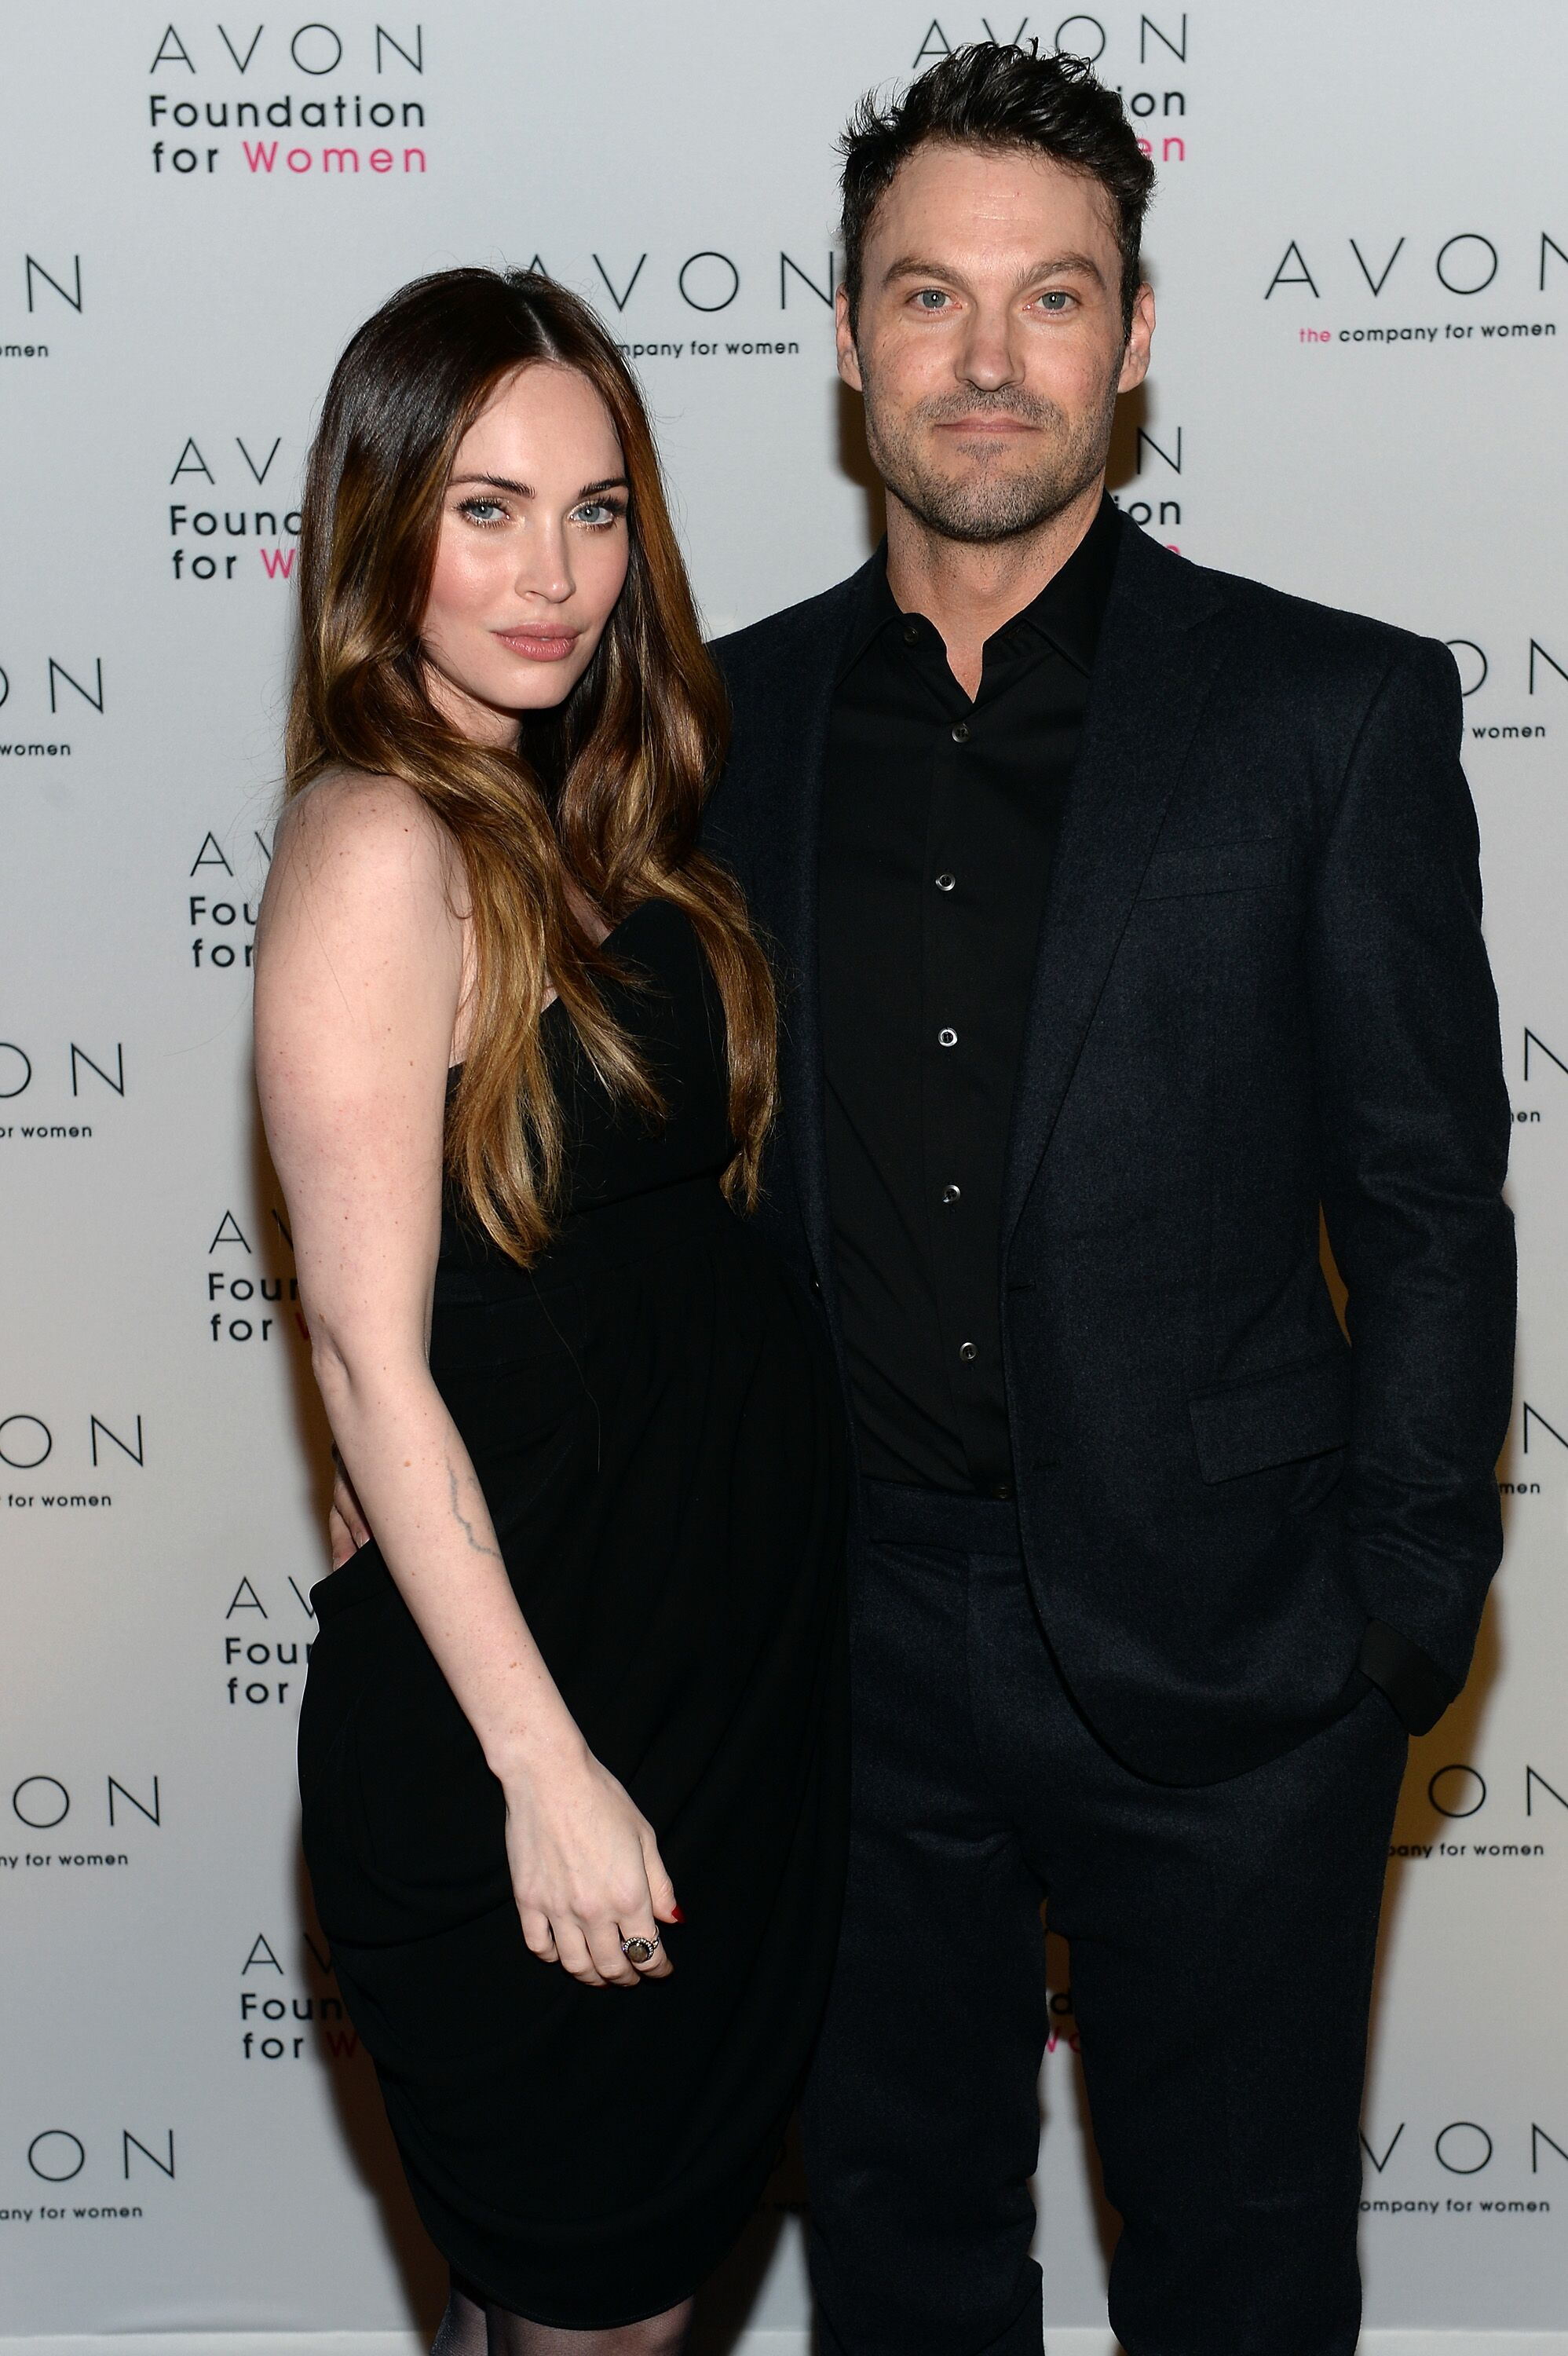 Megan Fox and Brian Austin Green at The Morgan Library & Museum. | Source: Getty Images